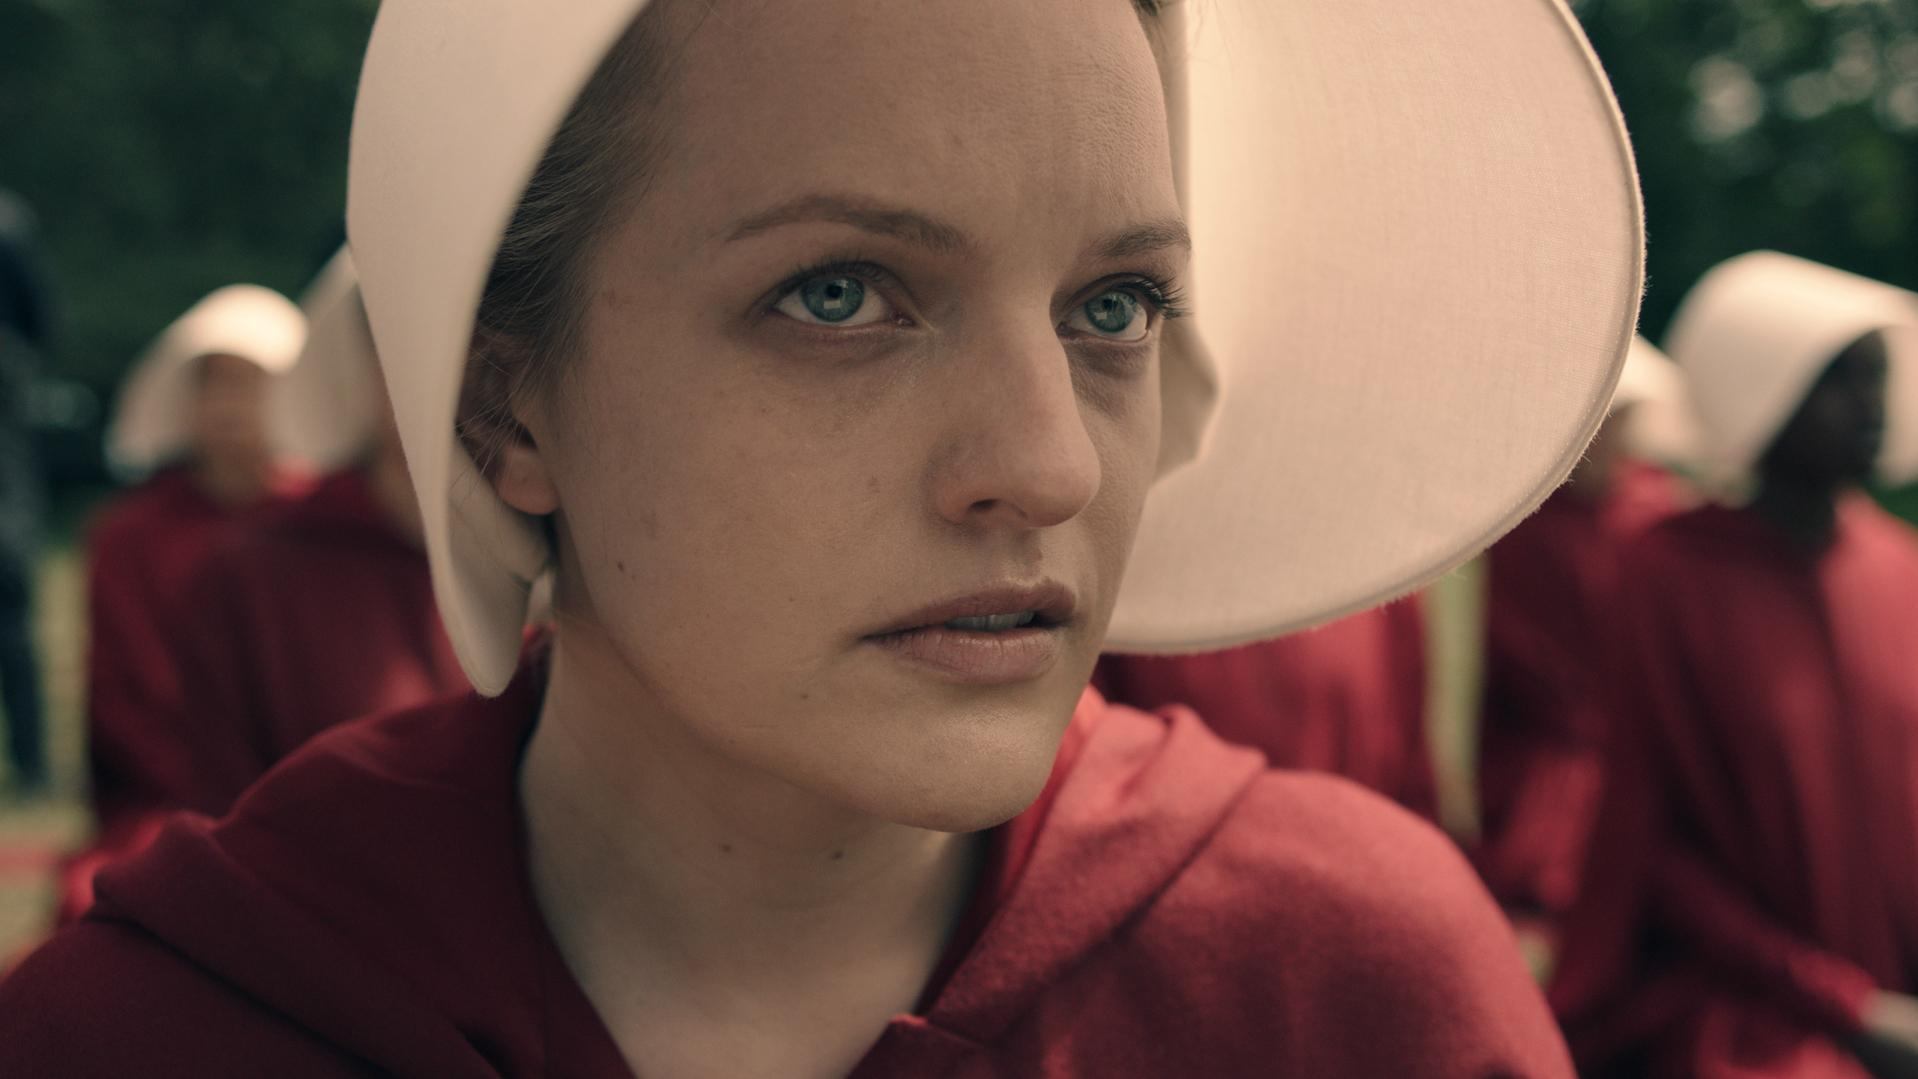 the handmaids tale Top 25 TV Shows of 2017